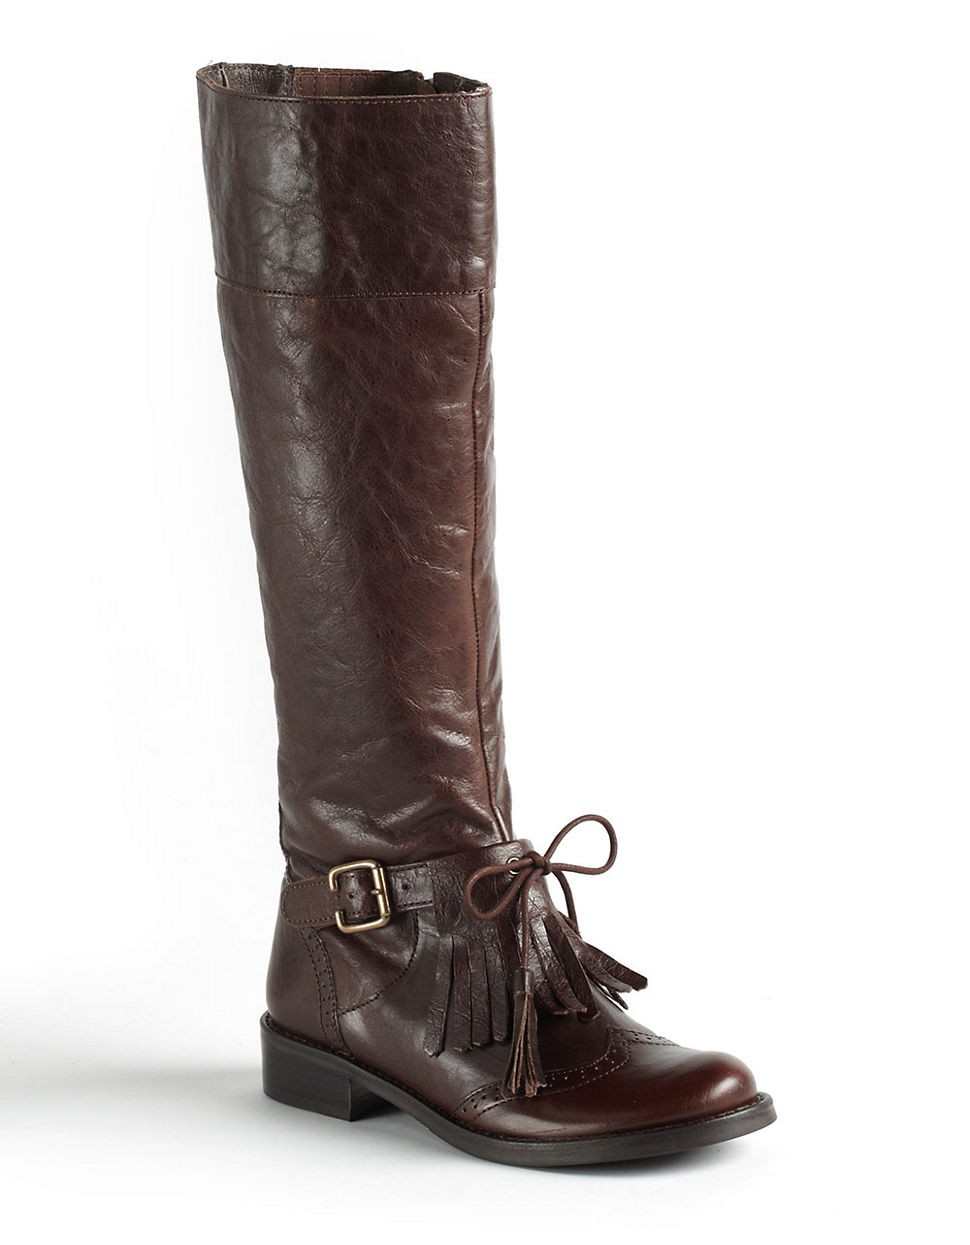 matisse leather boots in brown espresso